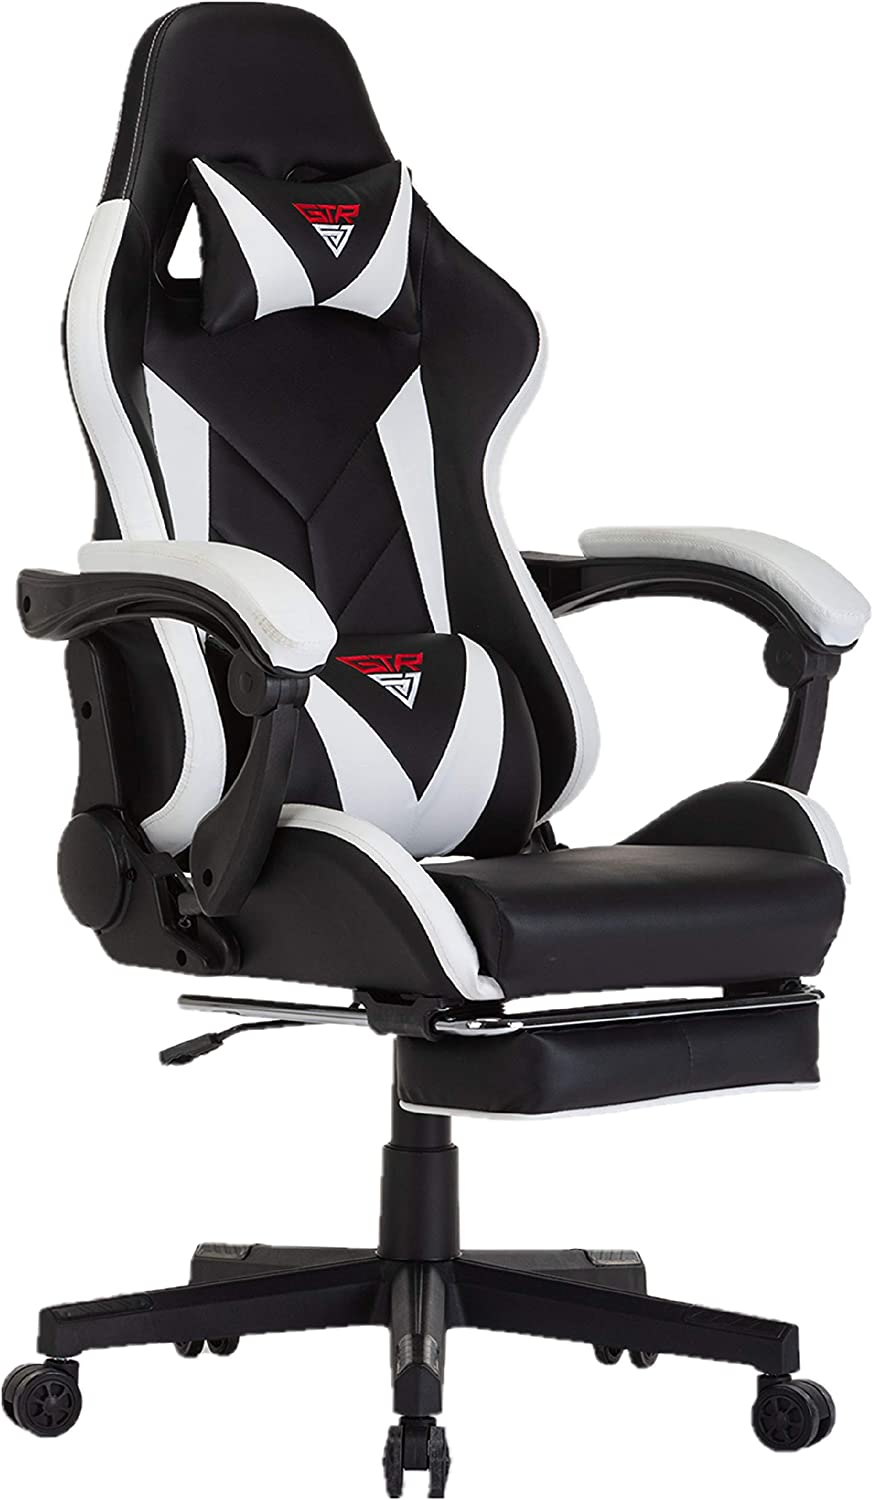 Gaming Chair Racing Style Ergonomic High Back Computer Chair with Adjustment Headrest and Lumbar Support E-Sports Swivel Chair with Footrest (Black/Ivory)